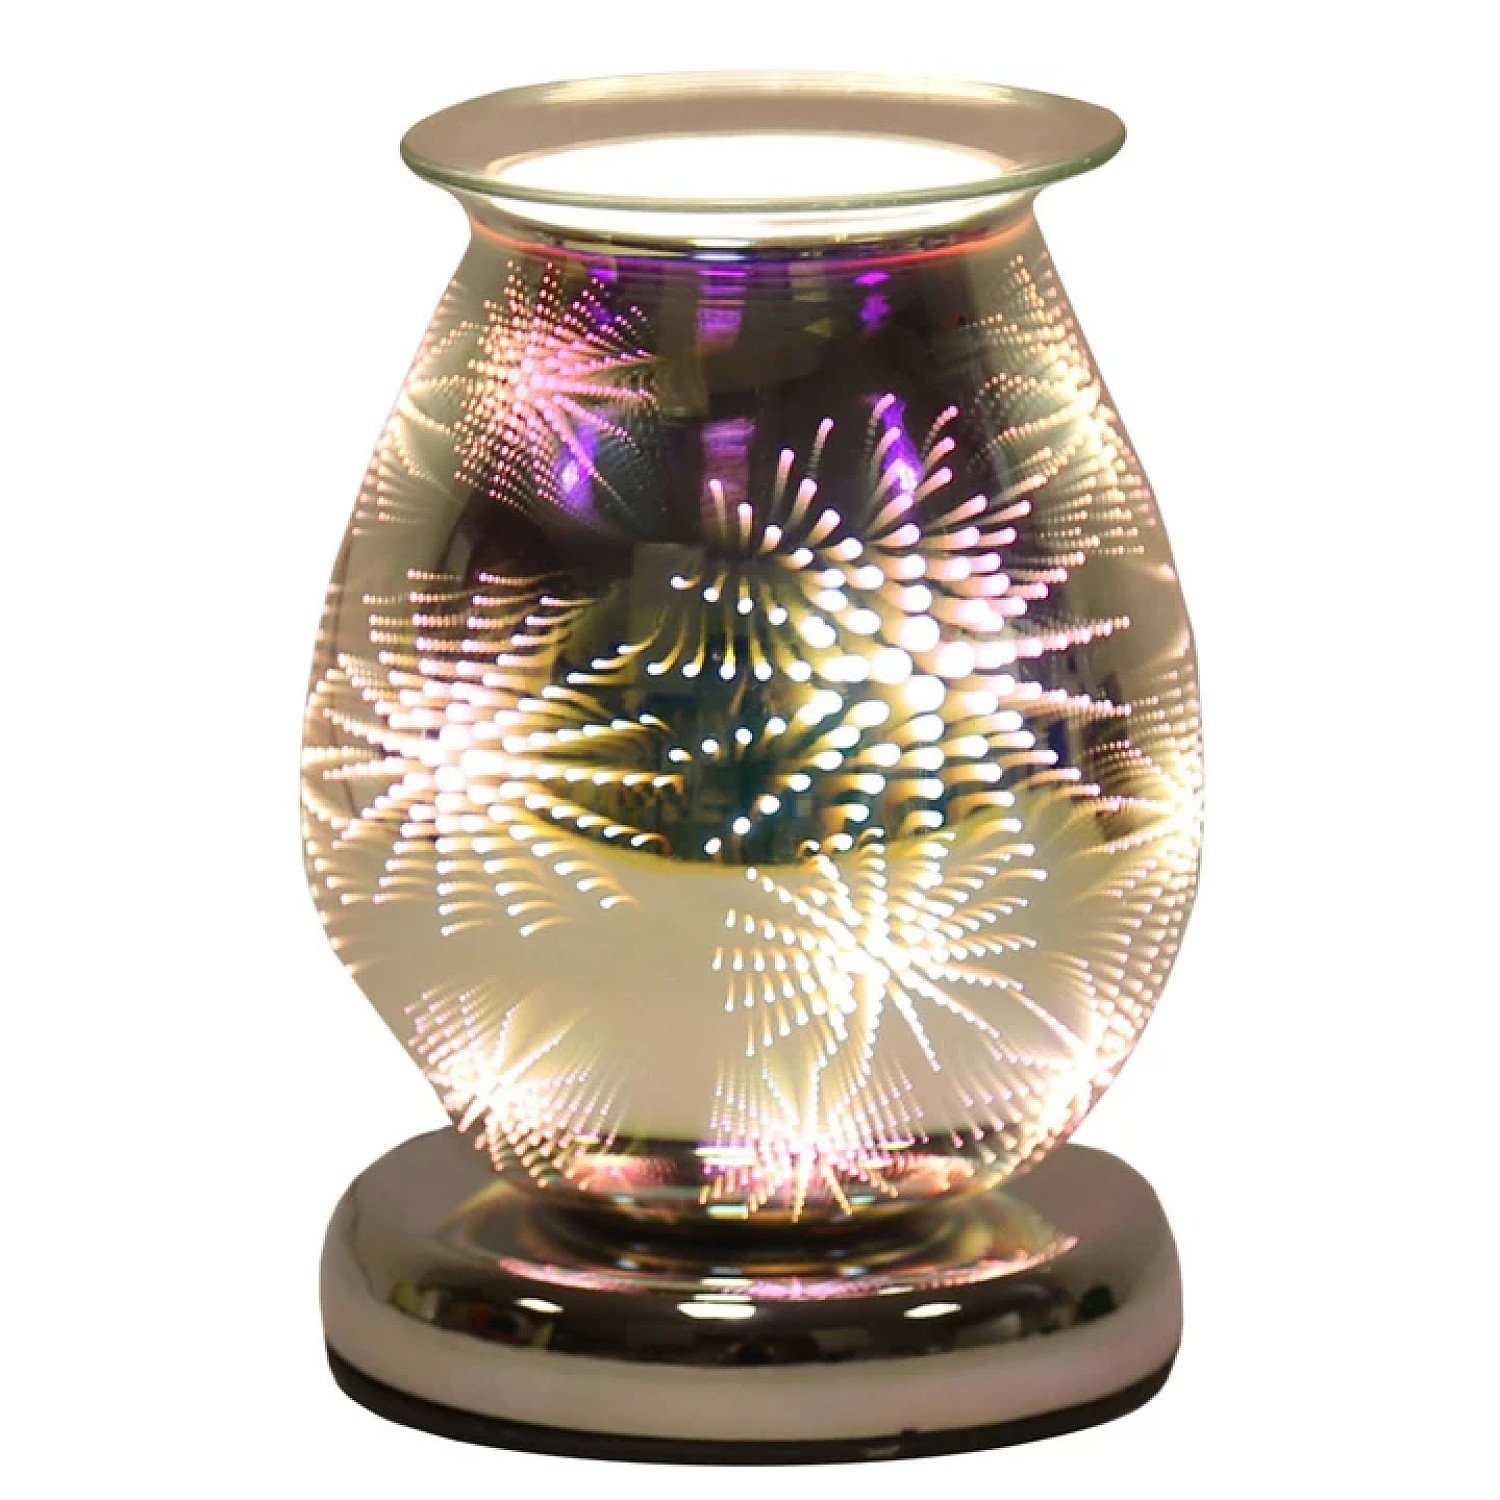 (Firework - Oval) Oval 3D Lights Scented Aroma Wax Burner Electric Touch Lamp Free Postage